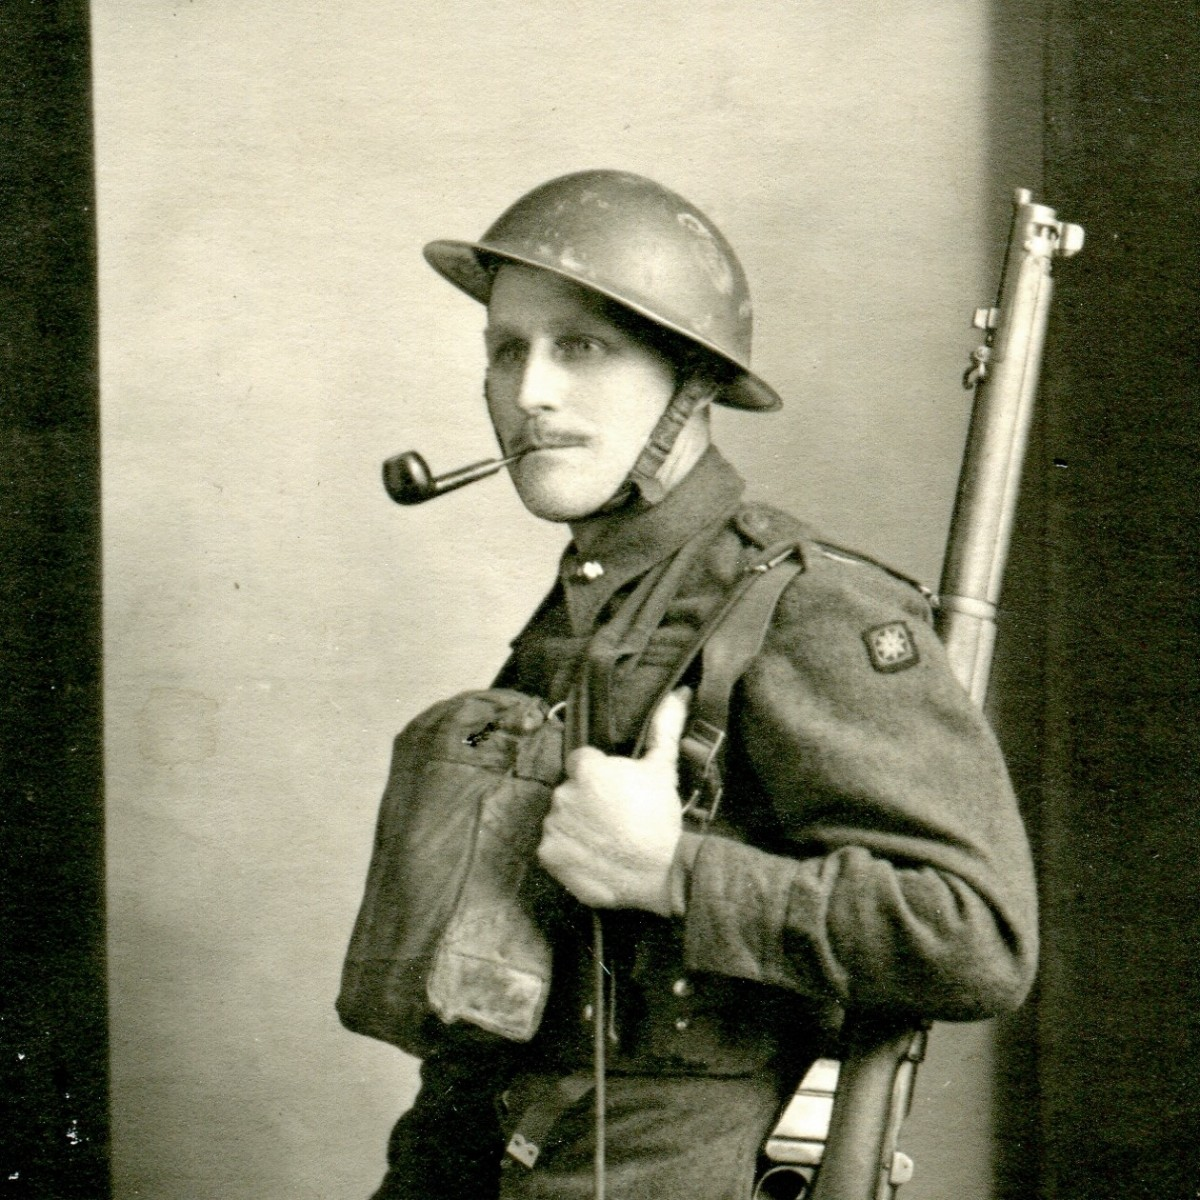 William Andrew, No. 2 Coy, No 3 Sec, Train. Section, 2nd Corps of Signals, wearing a MK II helmet.